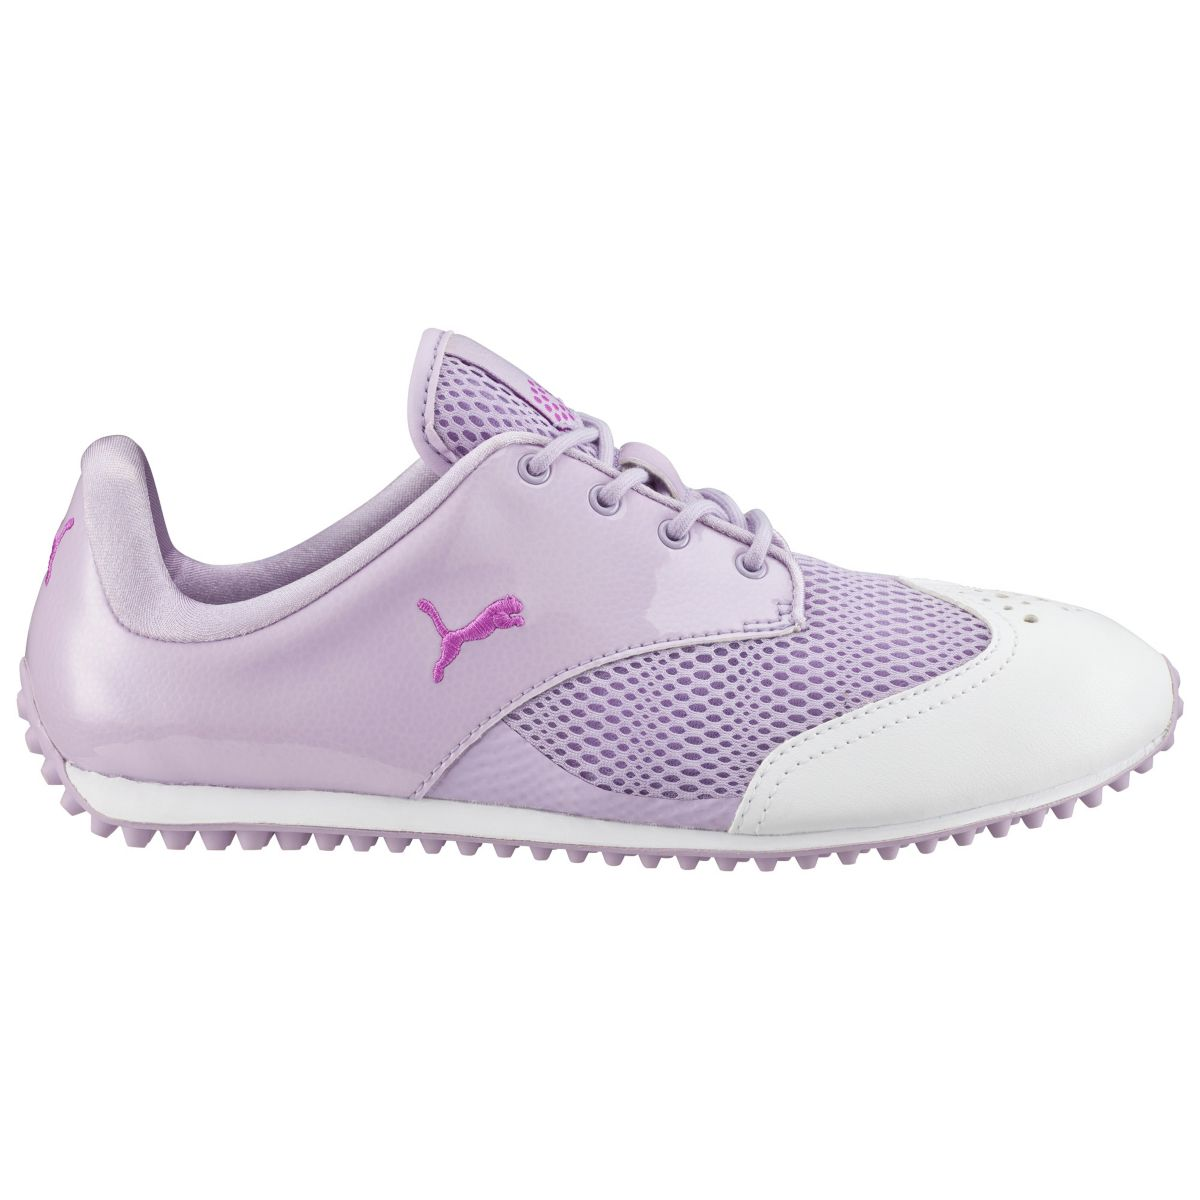 puma ladies shoes 2016